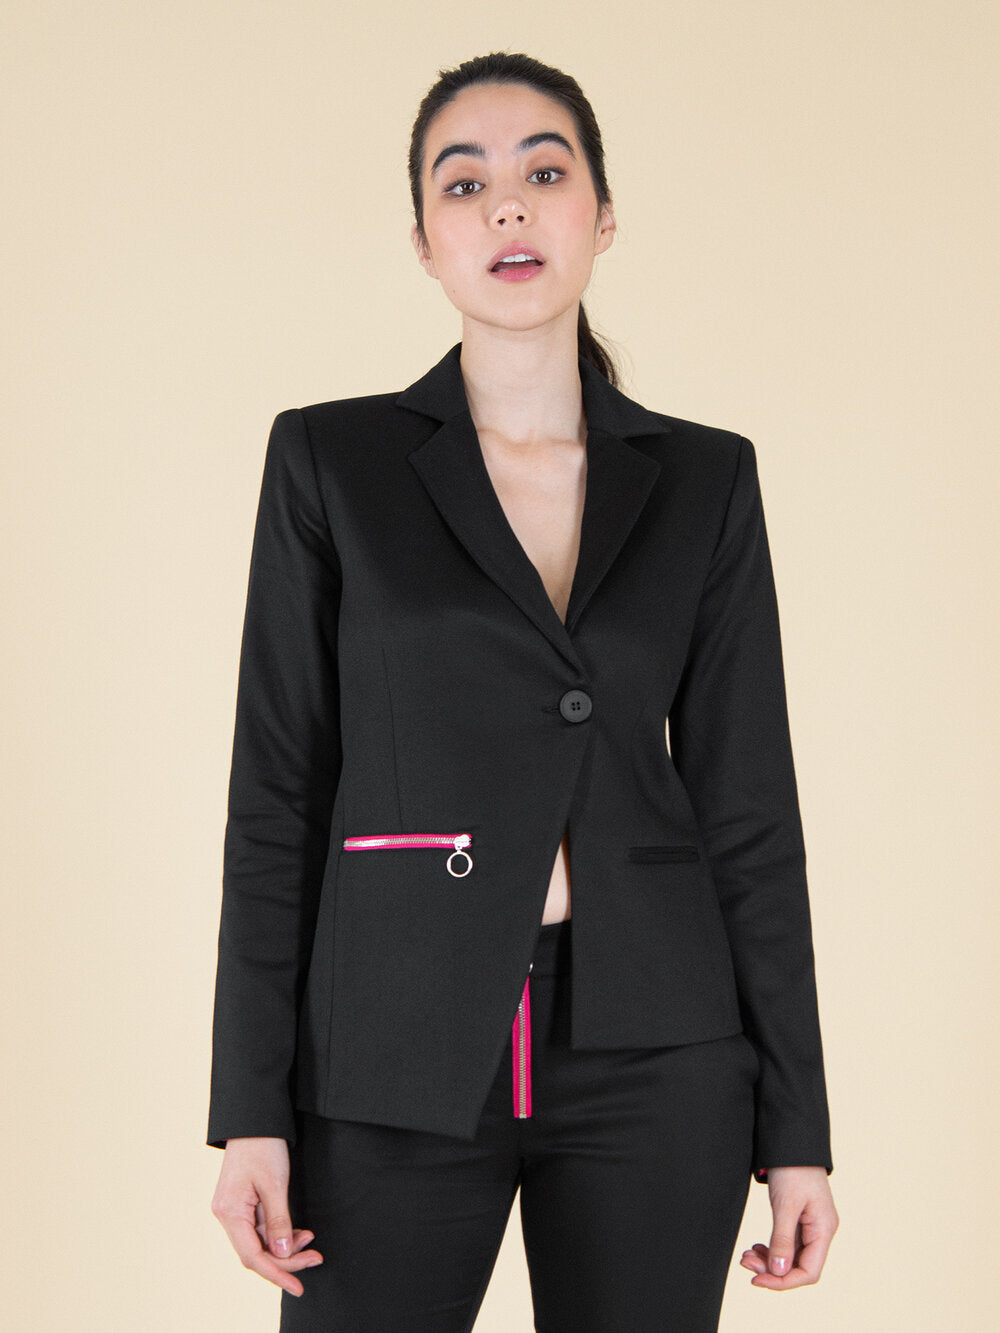 Woman wearing a black sustainable blazer with bright pink zipper